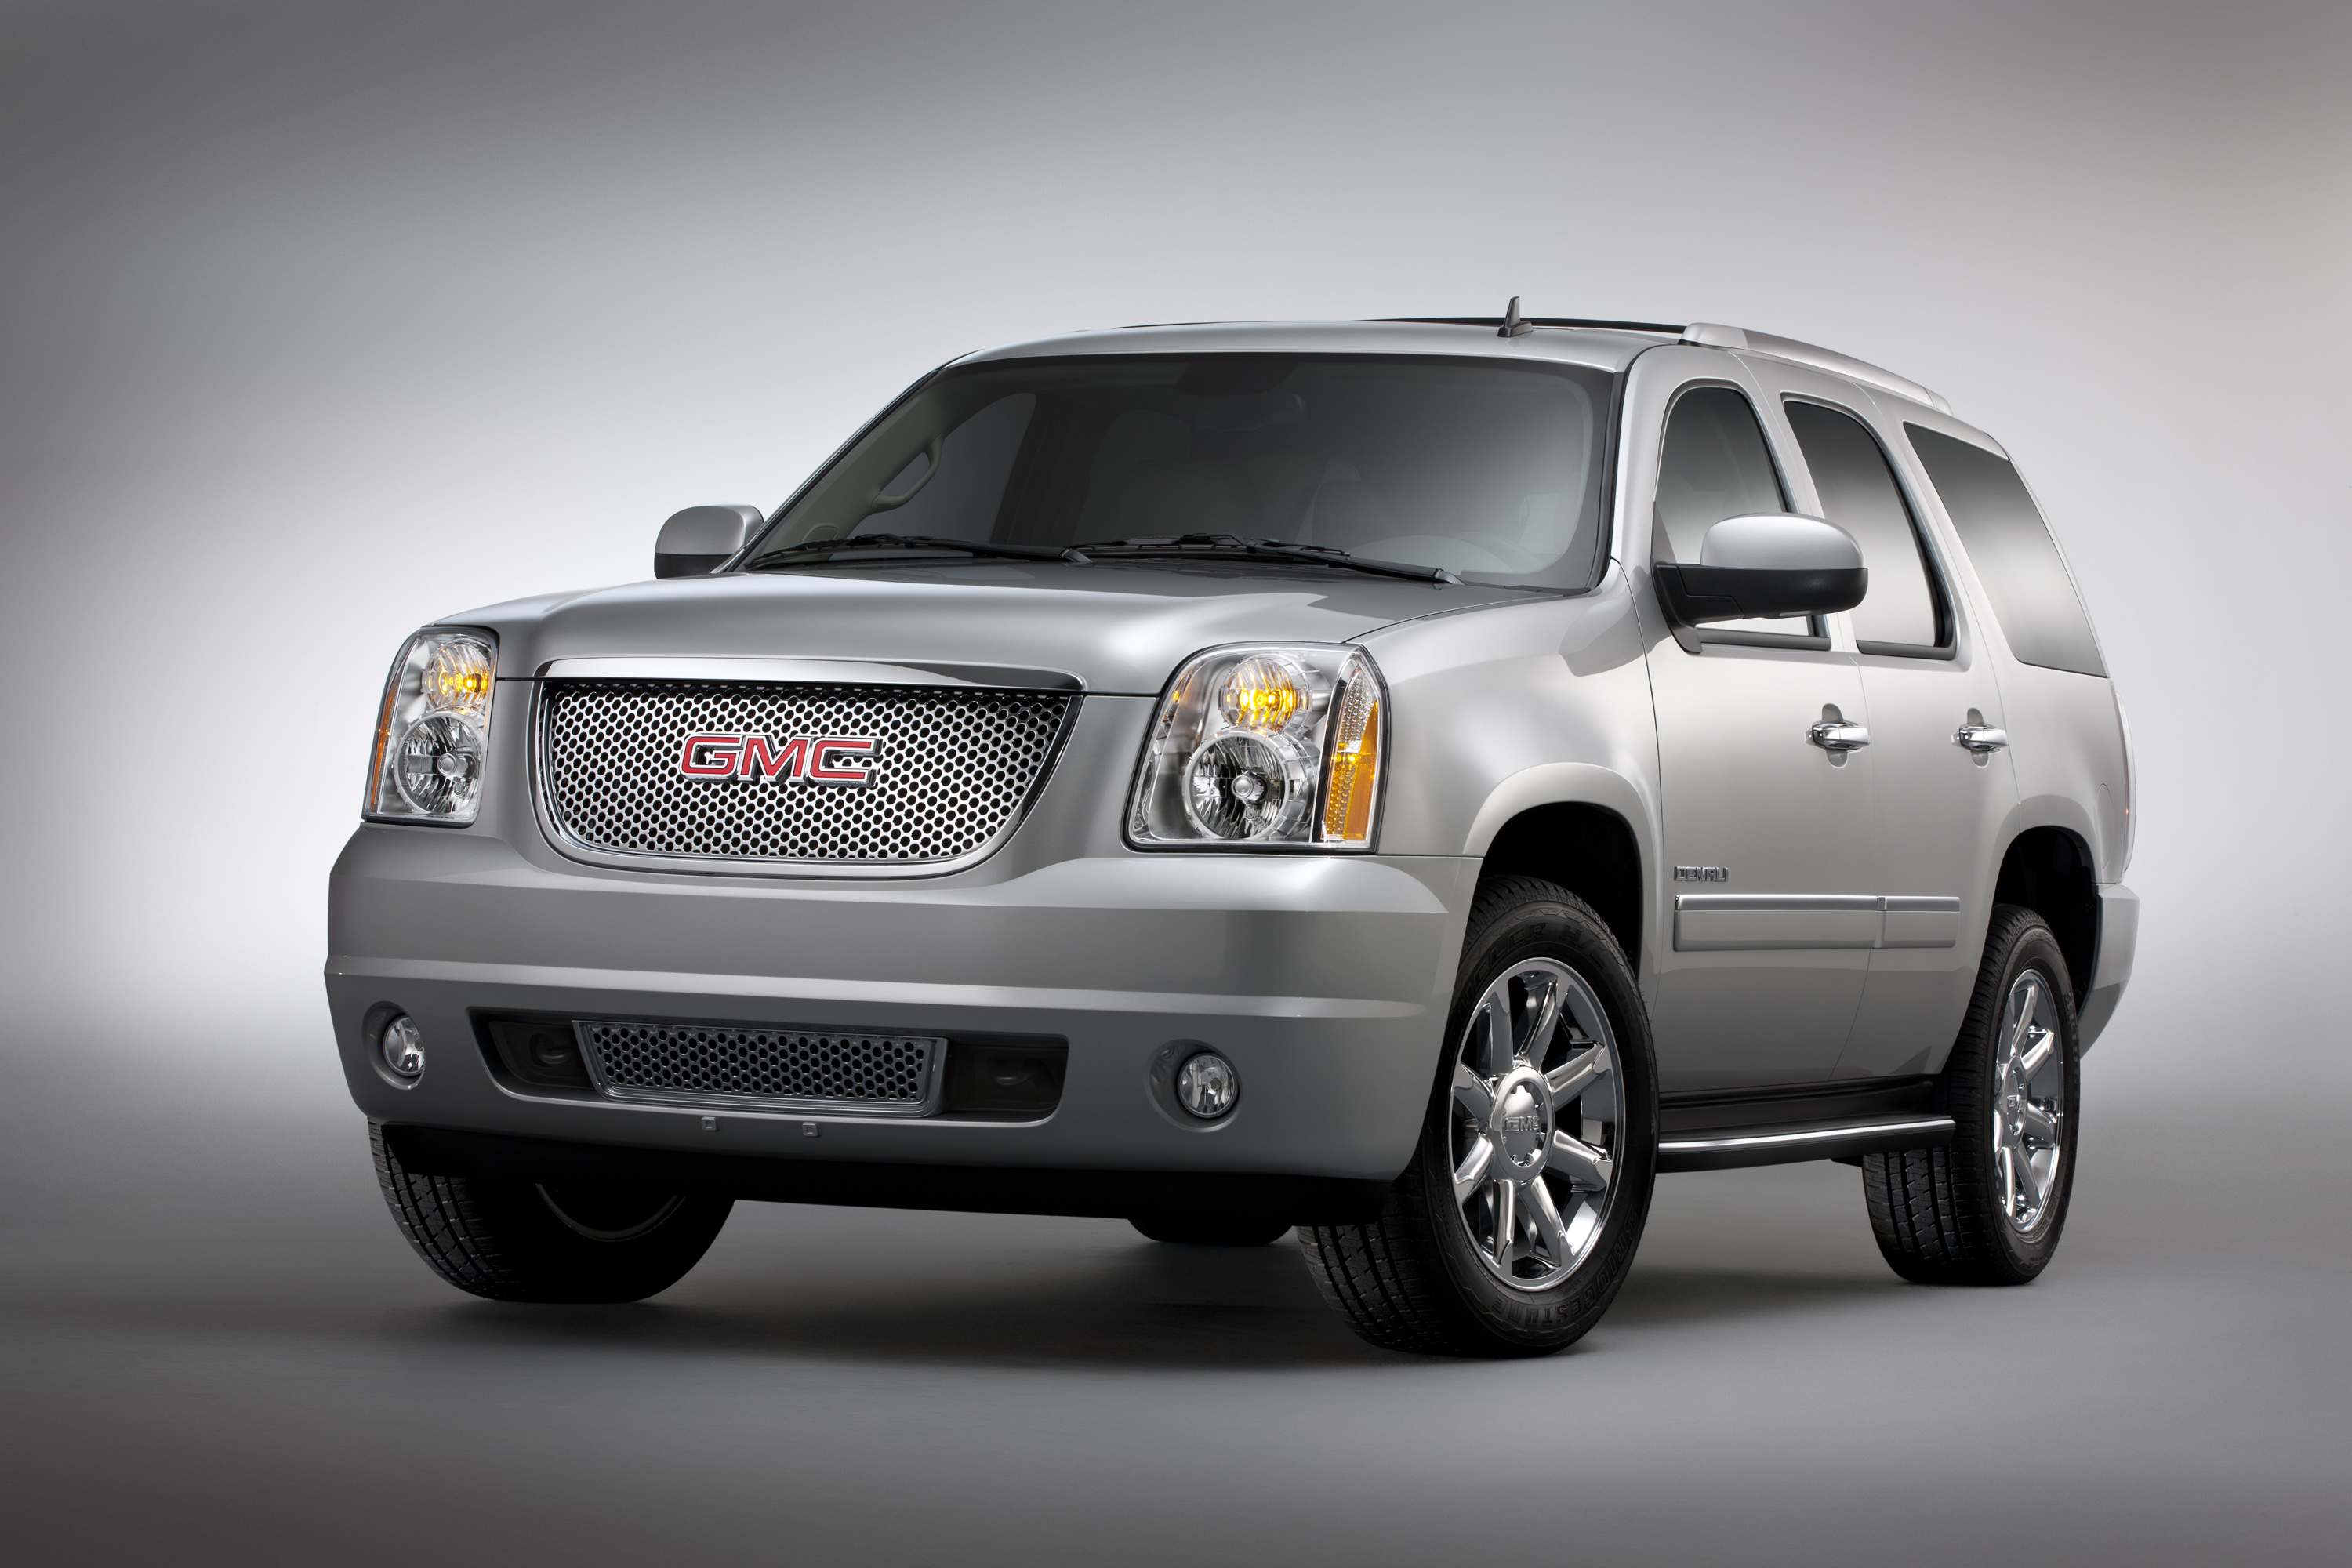 pressroom content denali us en detail gmc united yukon pages states images galleries vehicles photos media